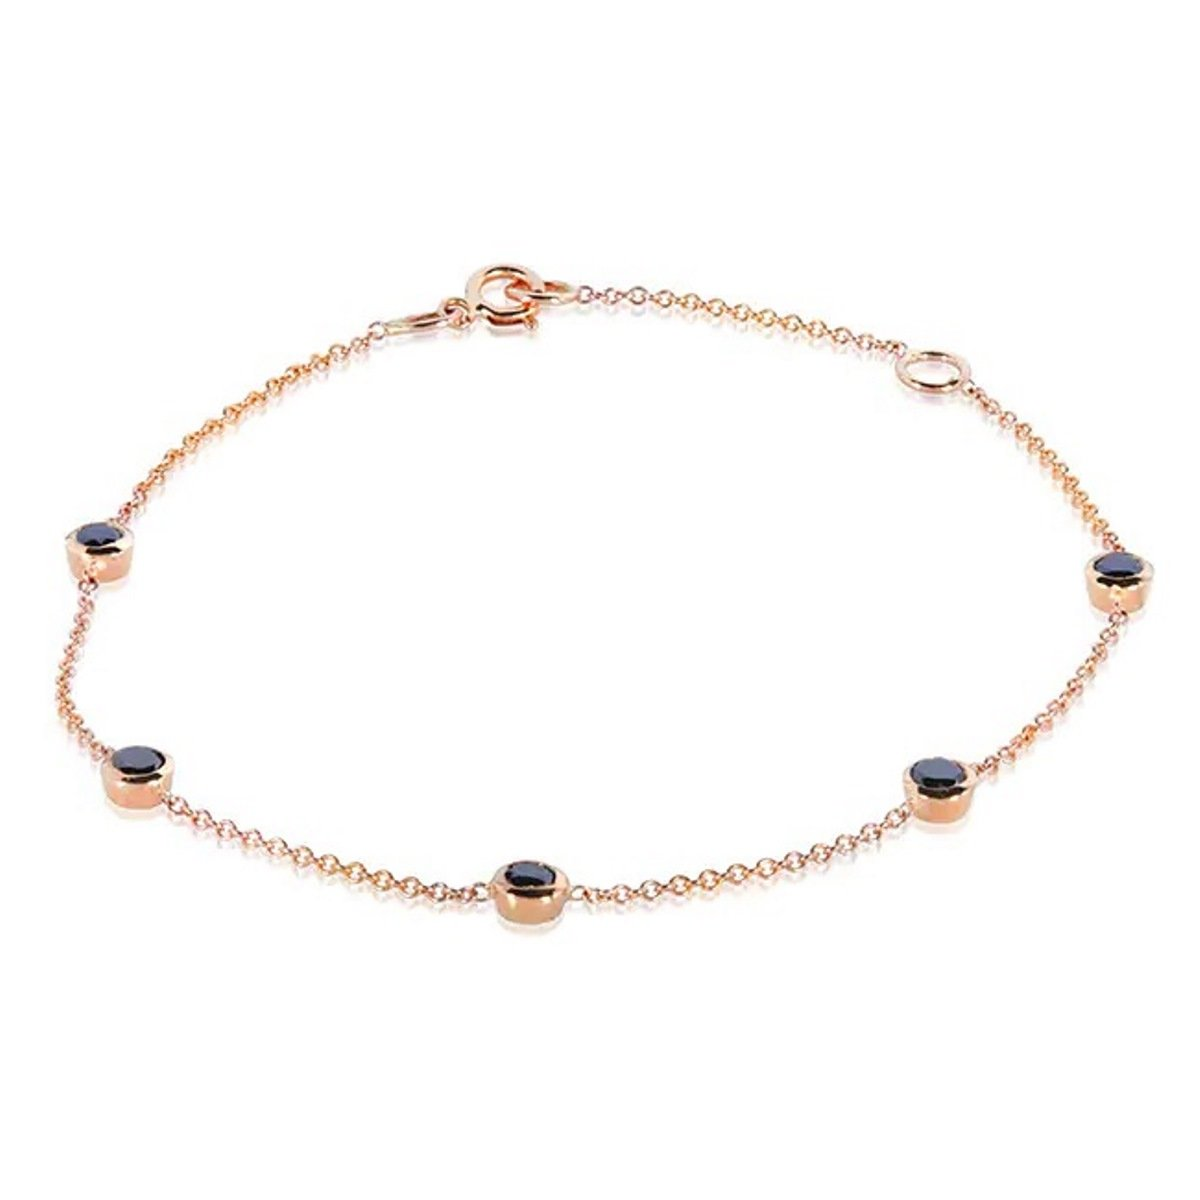 Natural Round Black Diamond Stations Bracelet Solid 14k Rose Gold KBRG